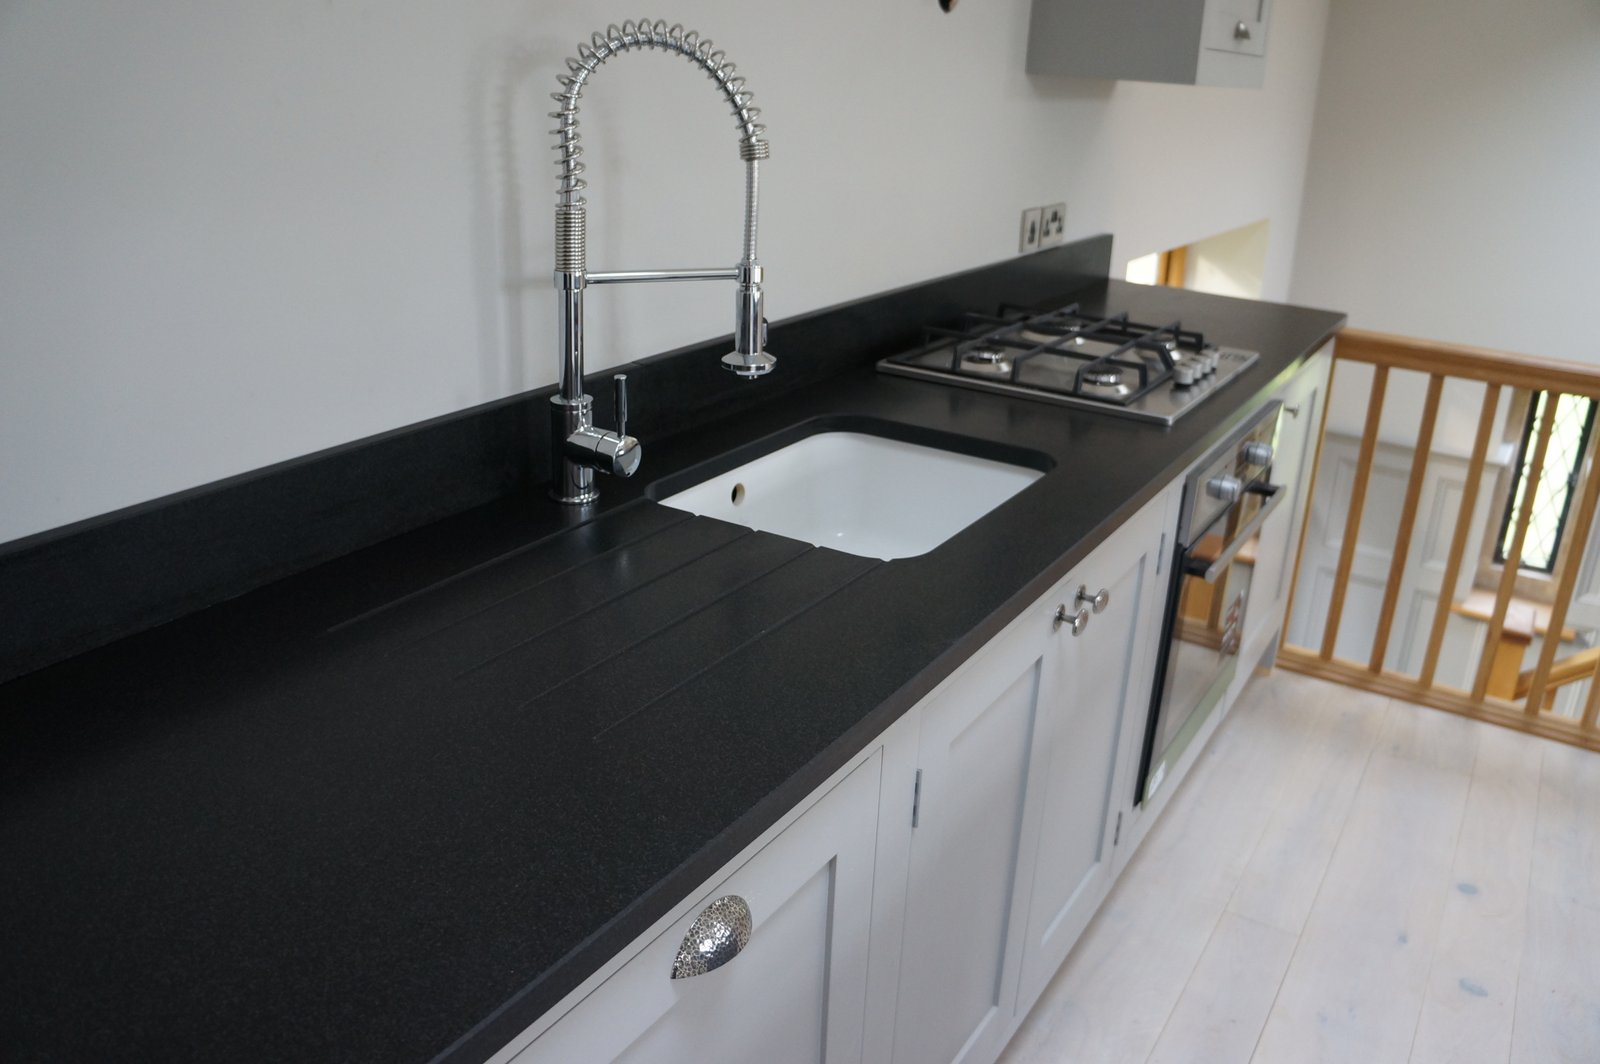 Granite Sink India : Eclipsia Bianca & Indian Jet Black flamed and brushed granite worktops ...